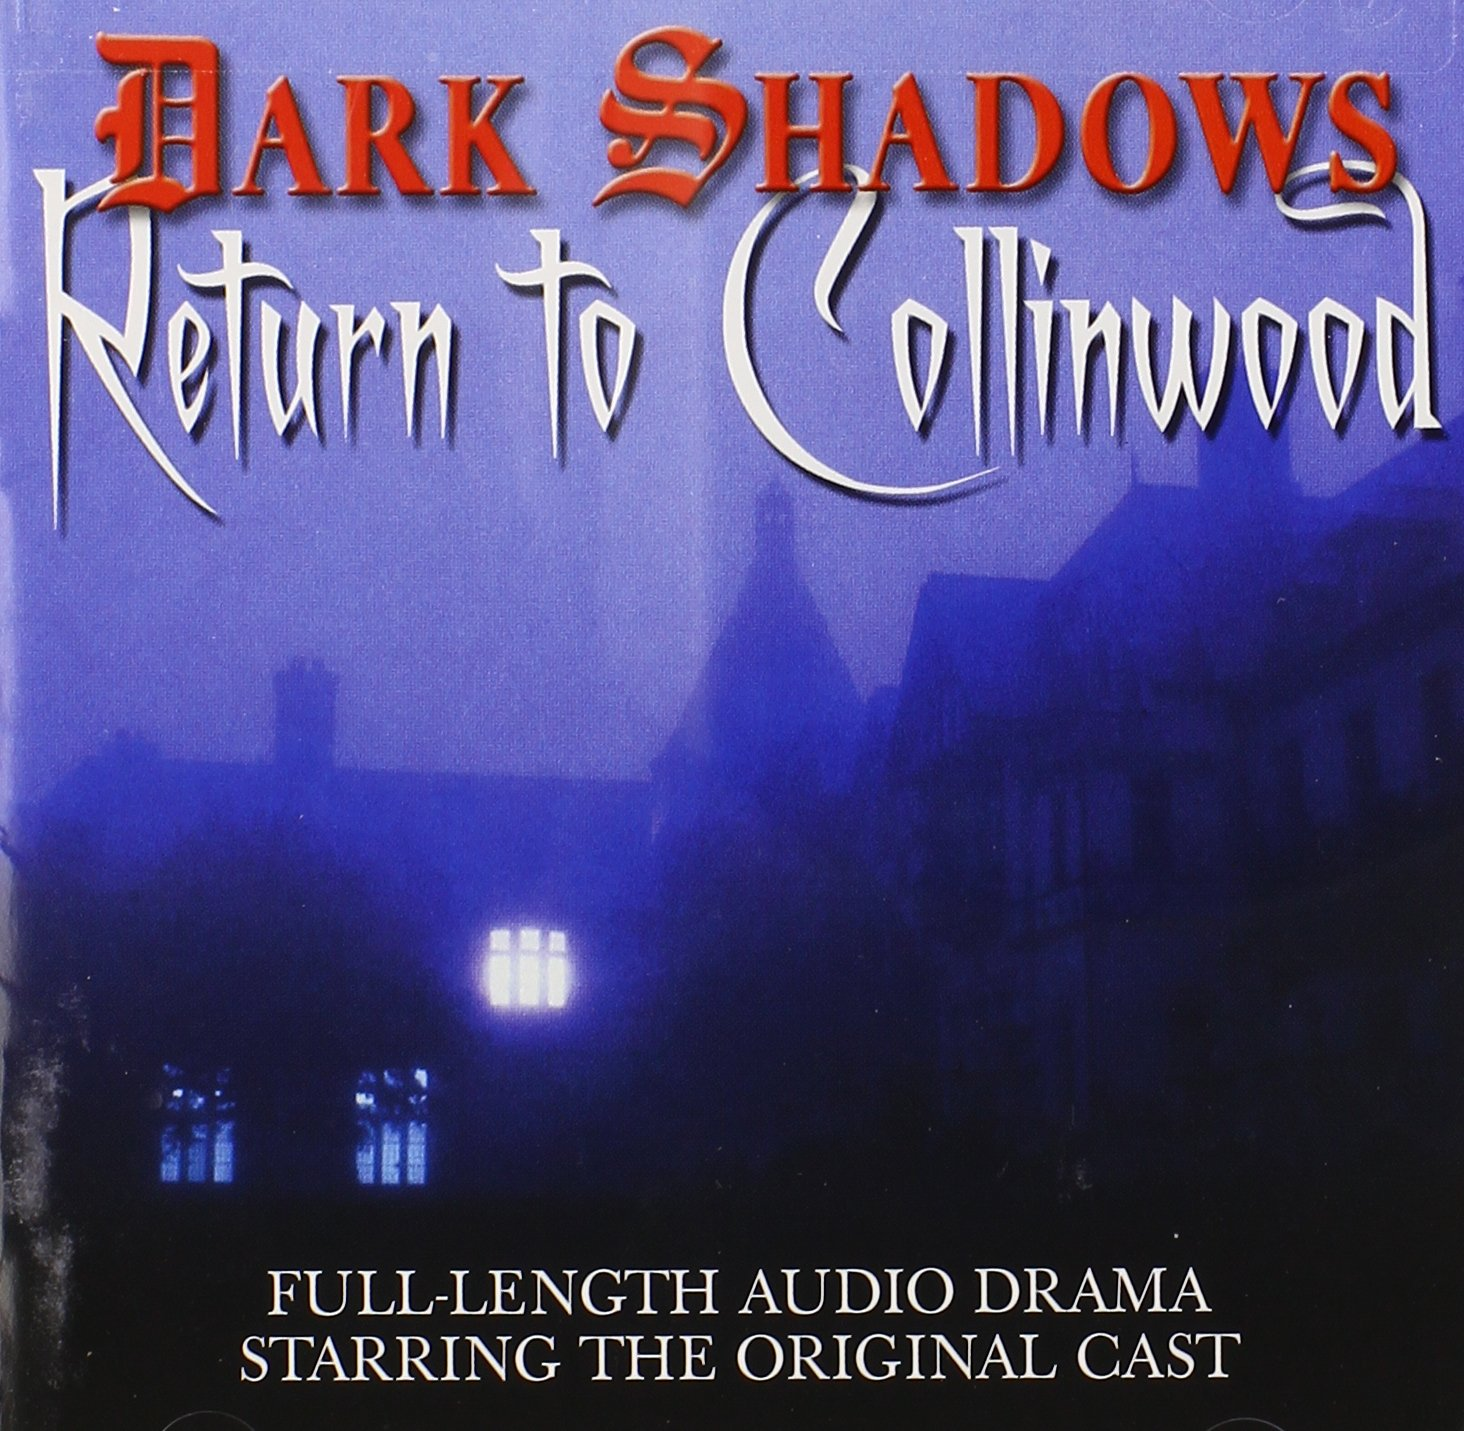 Dark Shadows: Return to Collinwood (Original Soundtrack) by Mpi Home Video